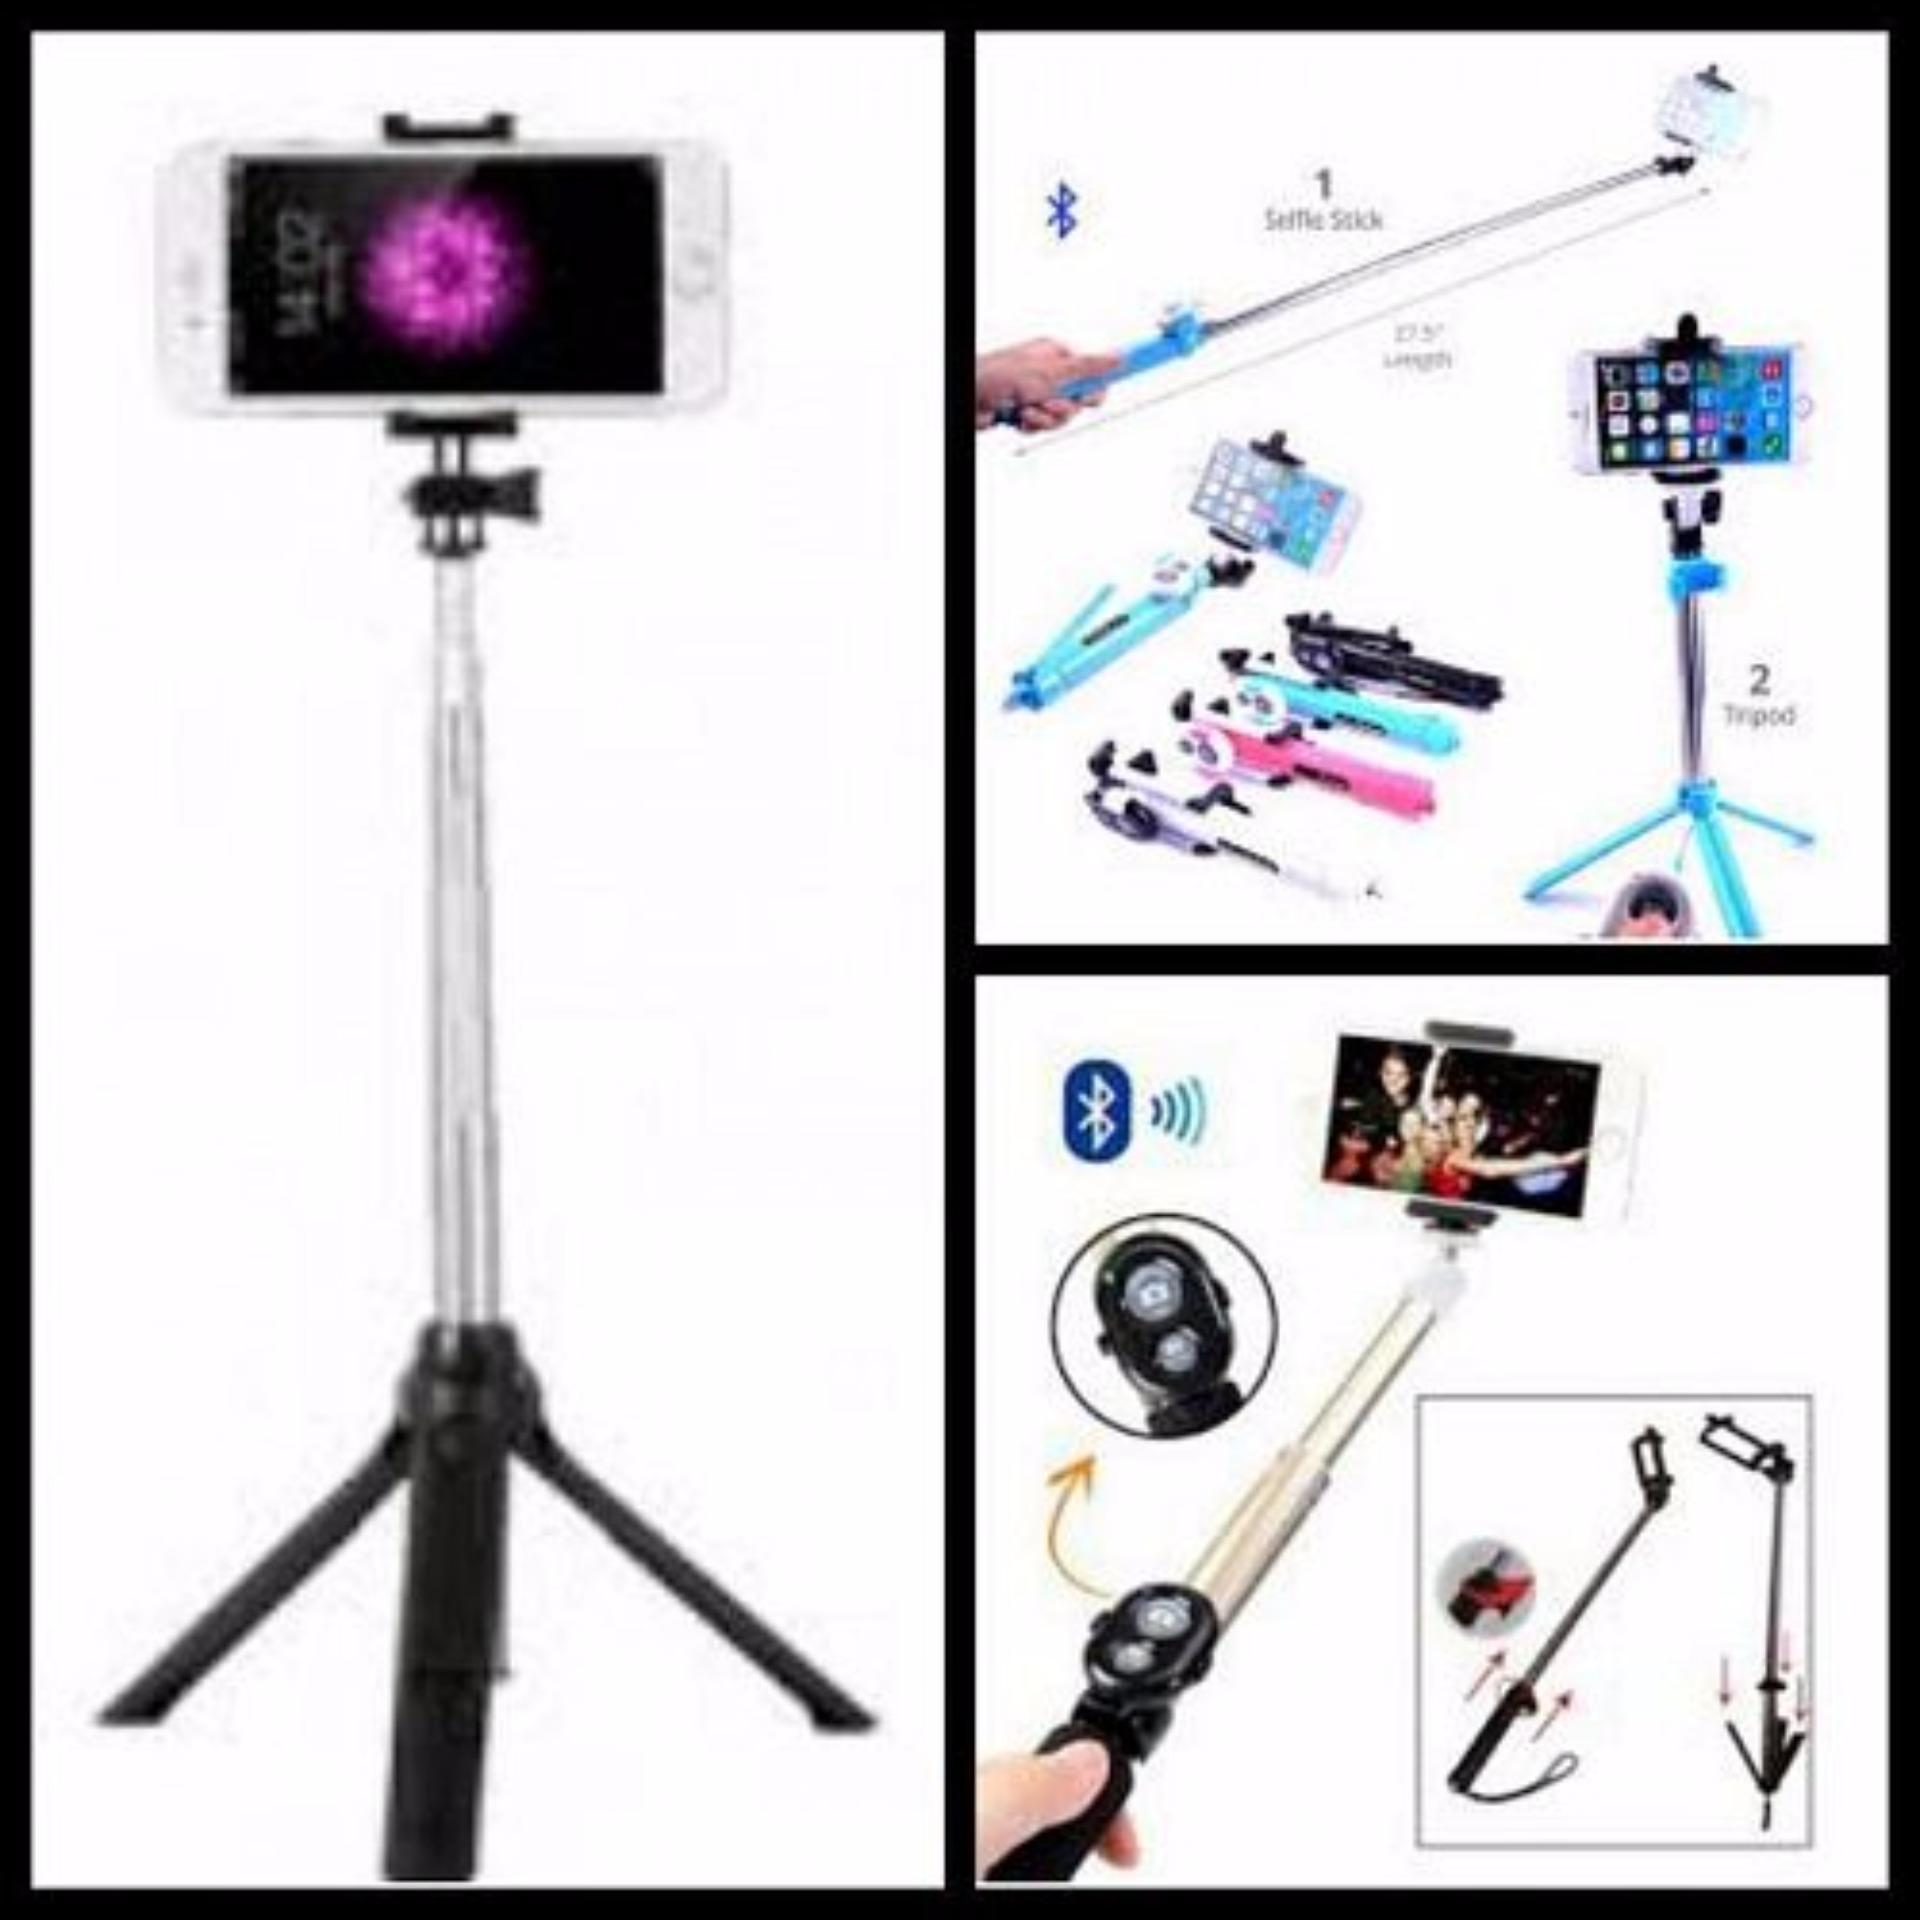 Tongsis Multi Function Build In Tripod Selfie Stick With BluetoothExtendable Folding Stick for Iphone Smartphone Free ...